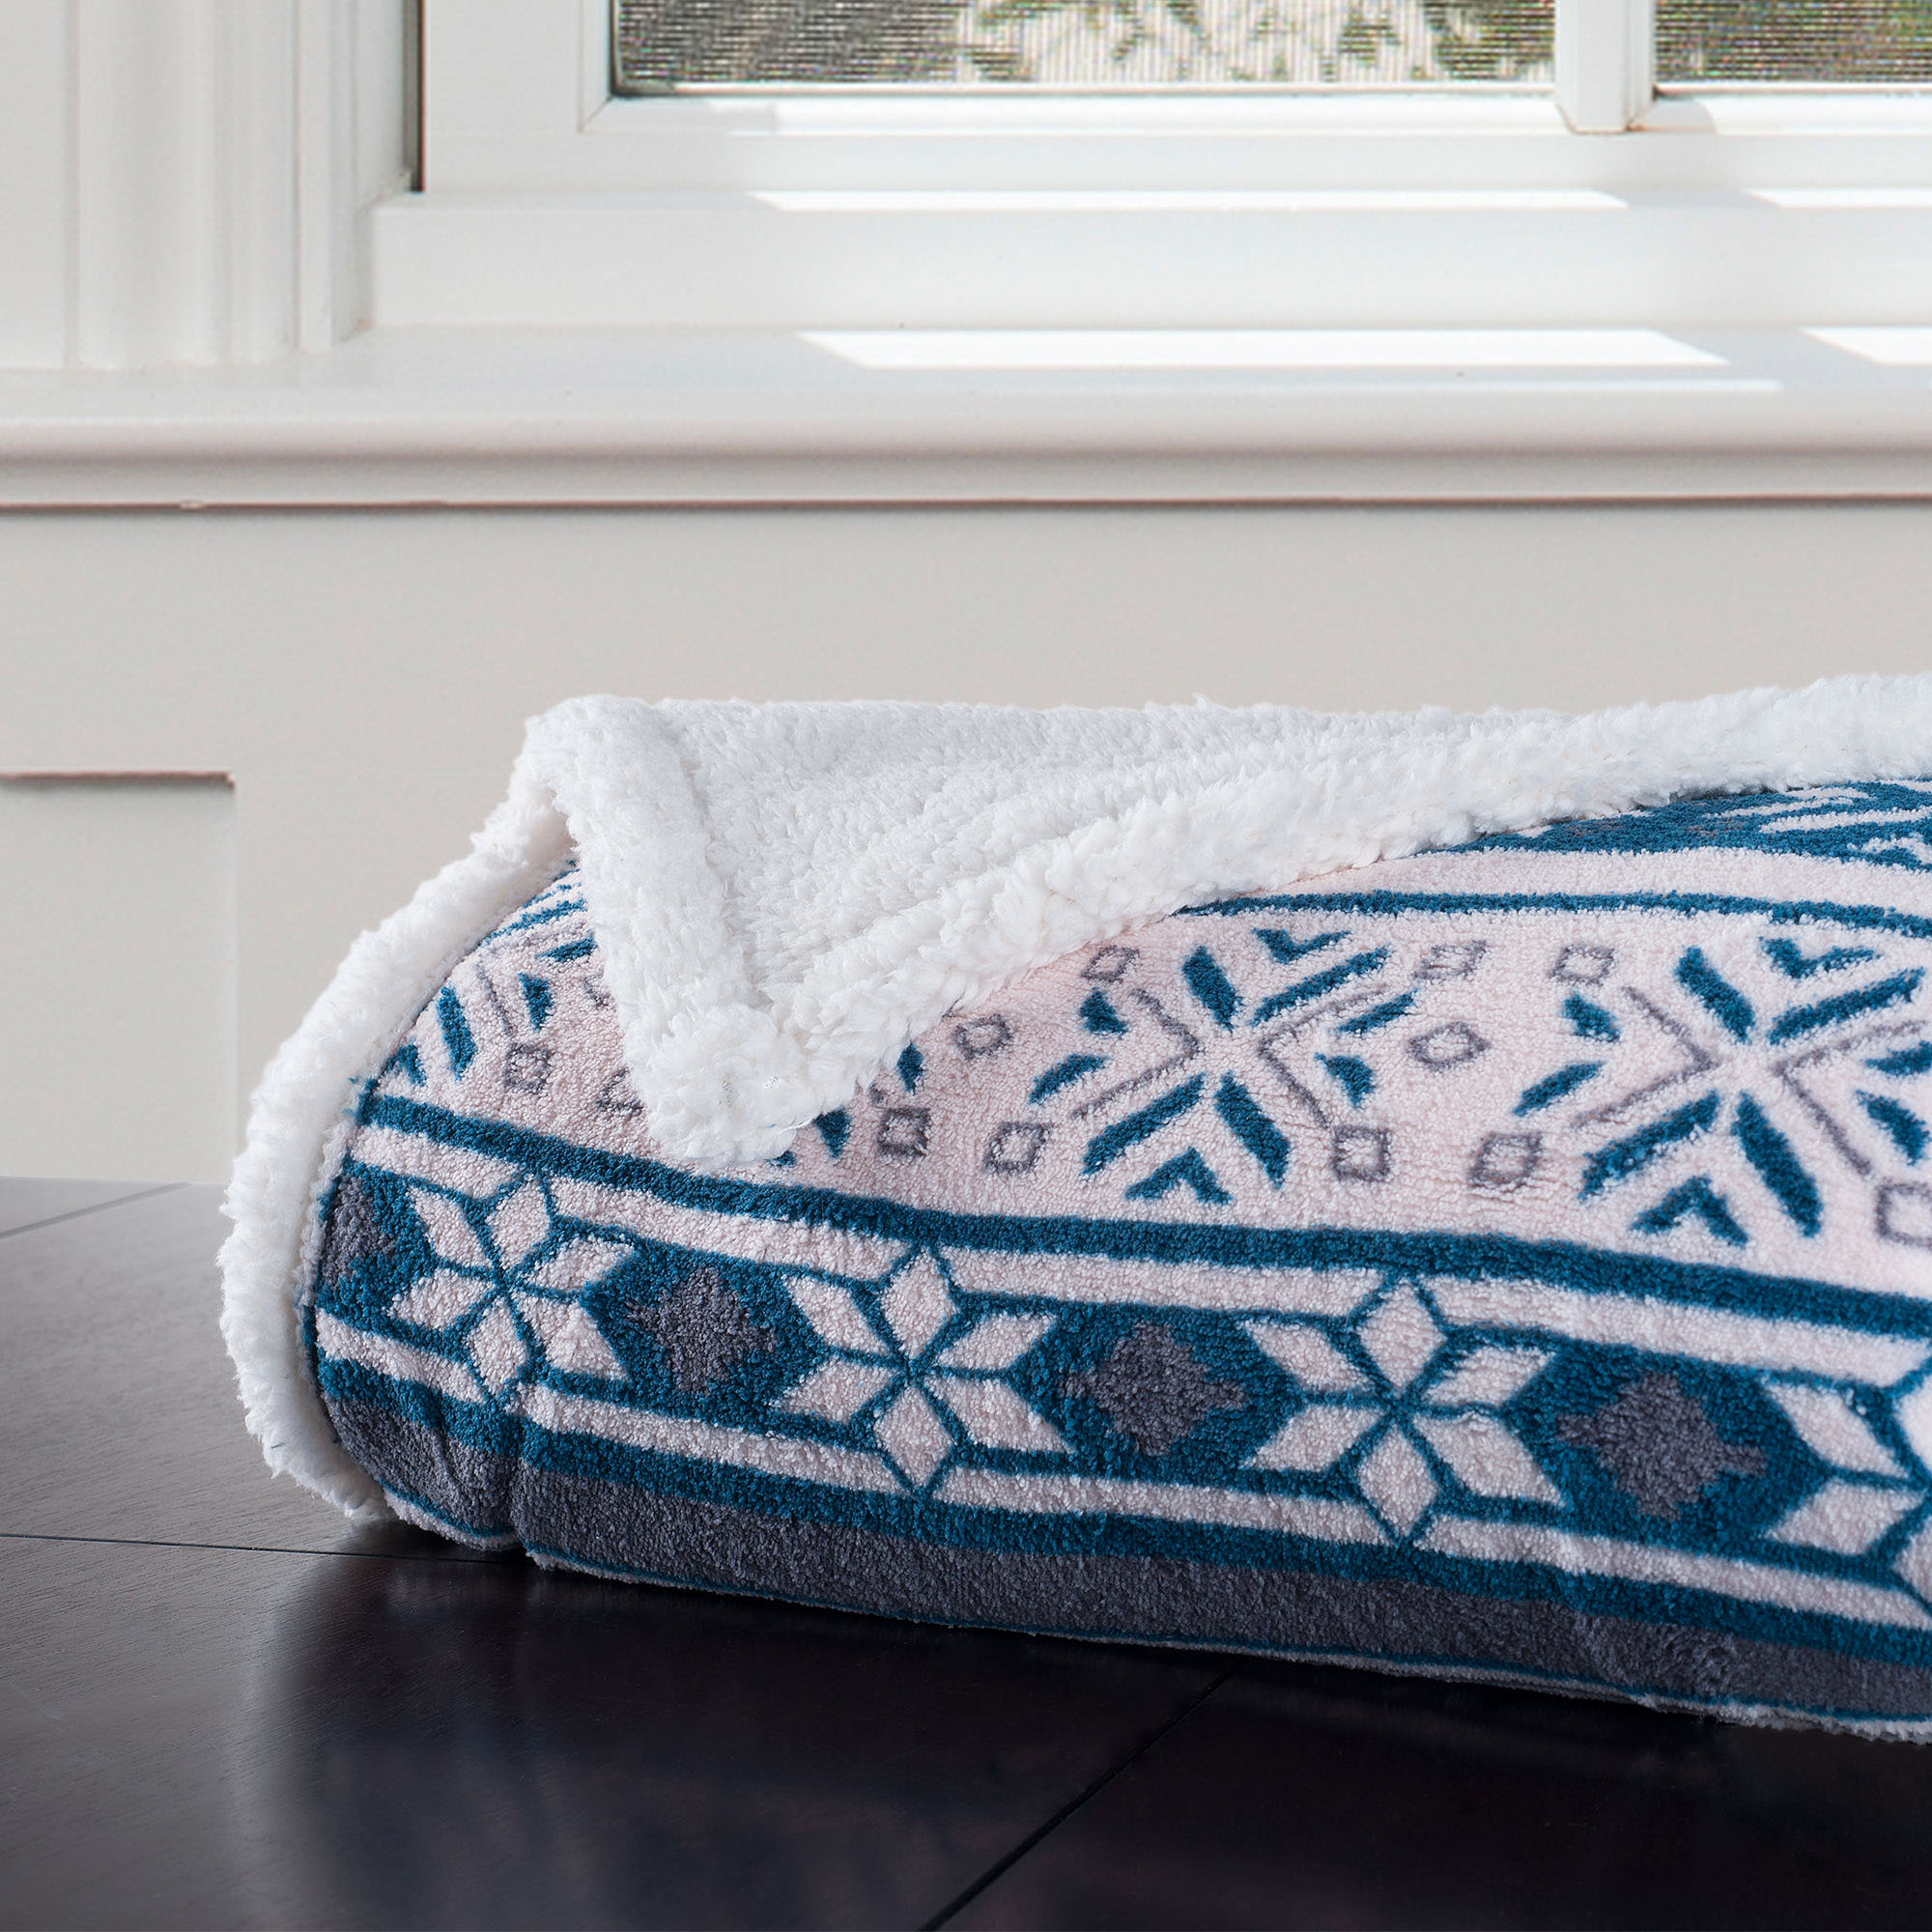 Somerset Home Fleece Sherpa Blanket Throw, Snowflakes